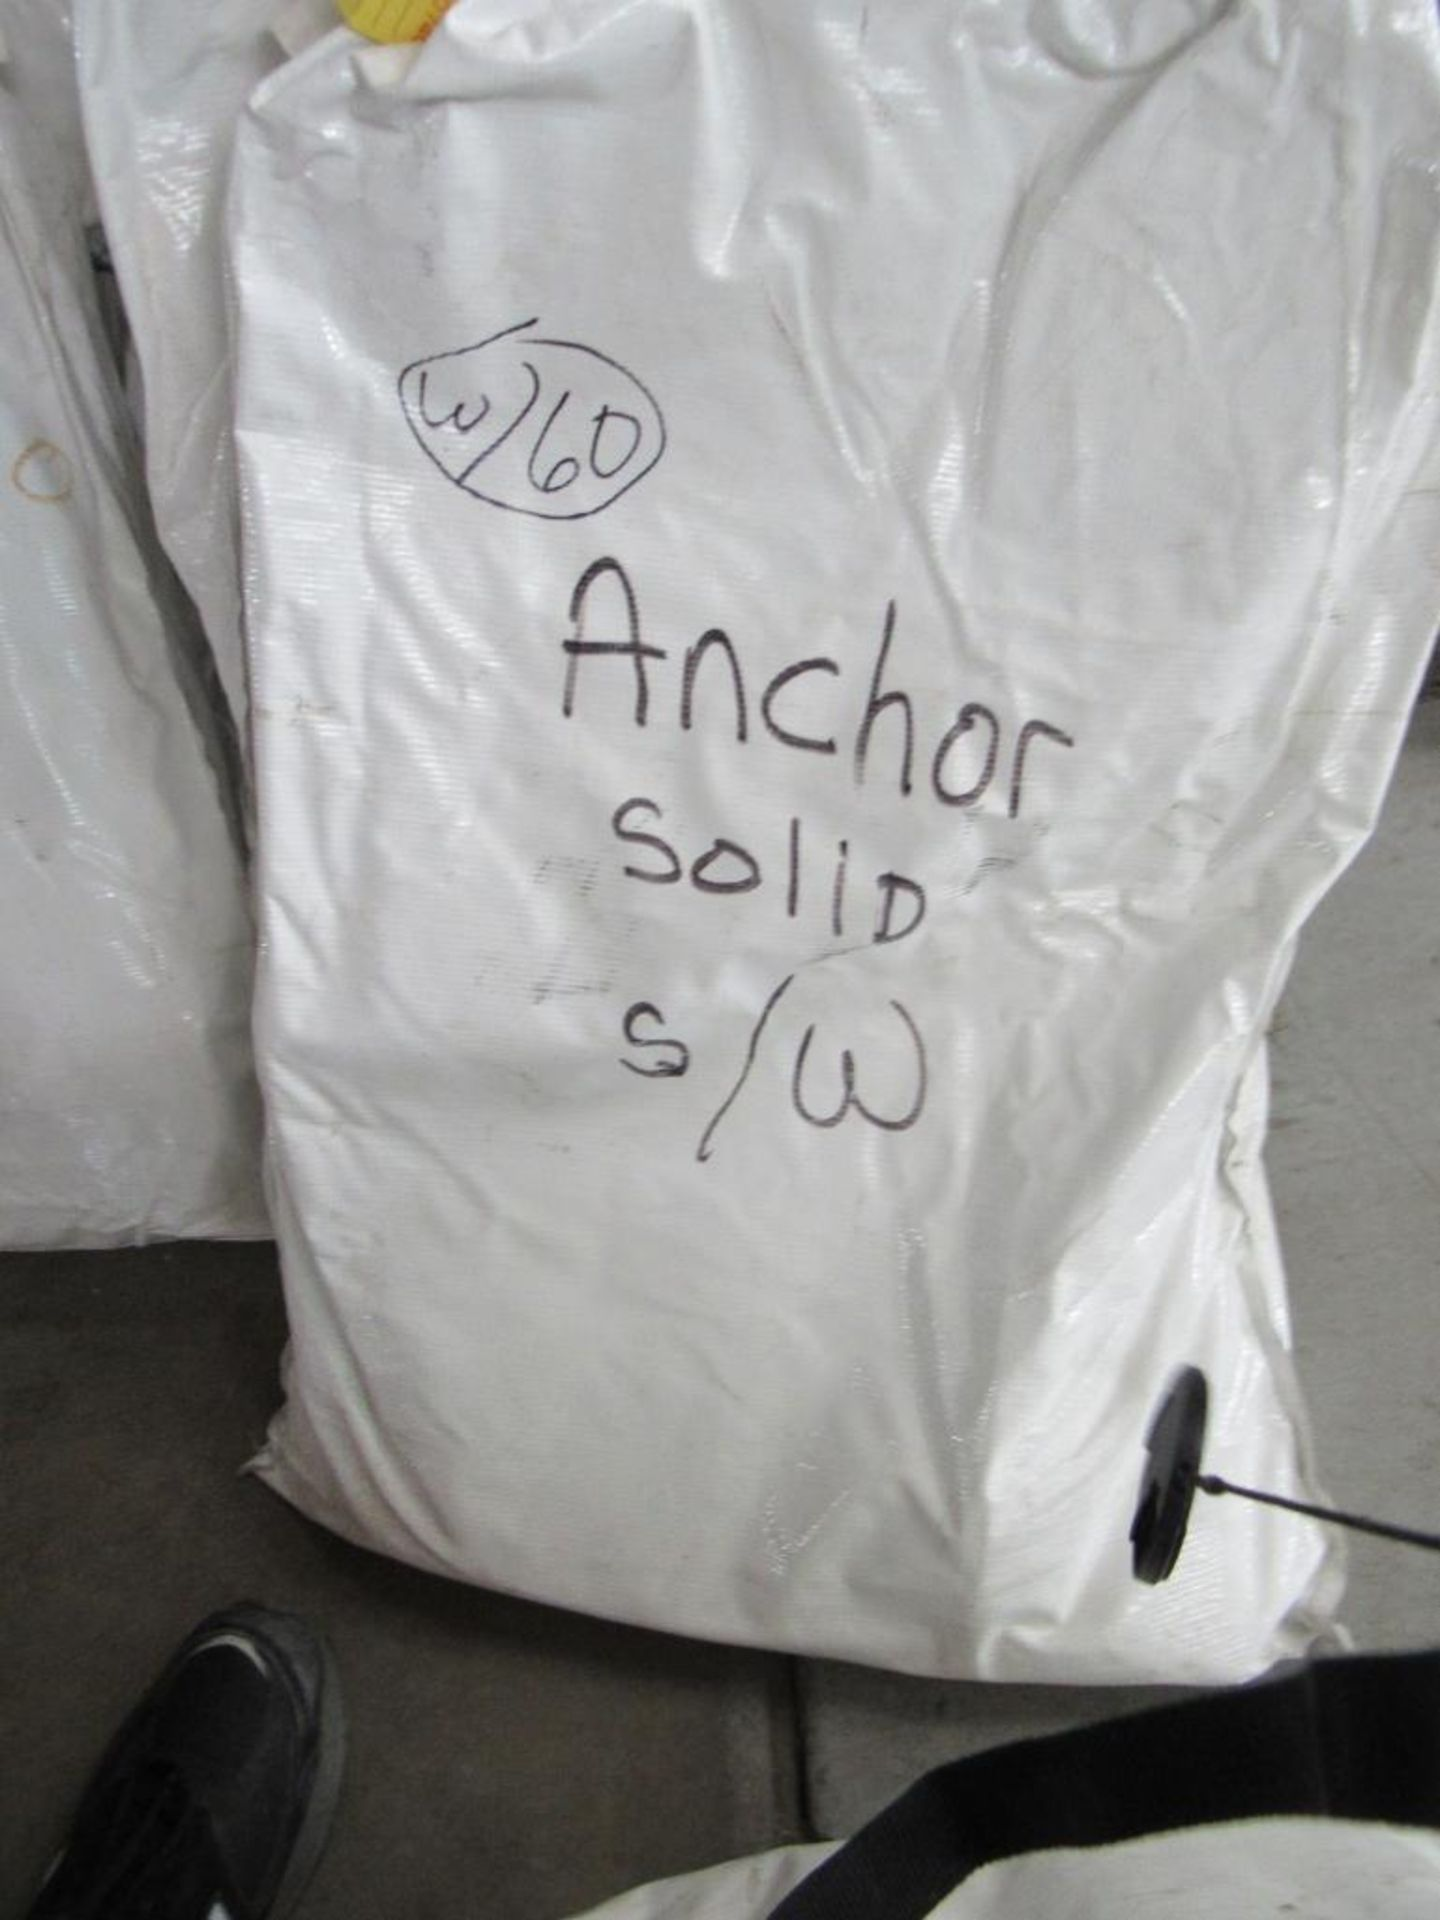 Lot 60 - LOT: (3) 20 ft. Solid Side Walls for 20 ft. x 20 ft. ANCHOR Tents (1) 20 ft. Window Side Wall